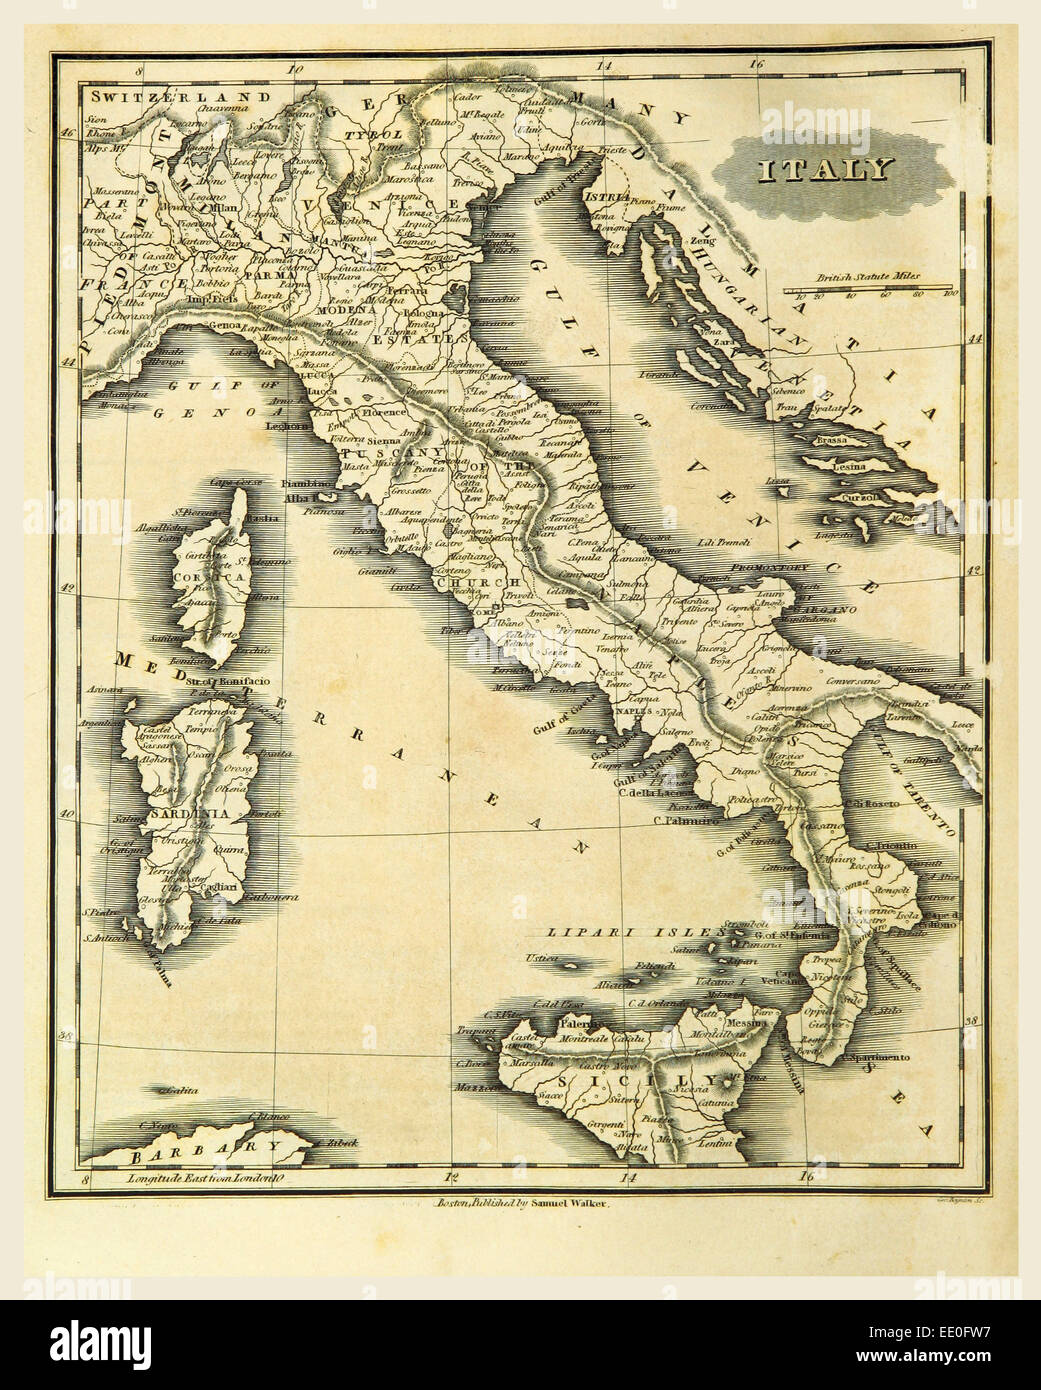 Map of Italy, 19th century engraving - Stock Image